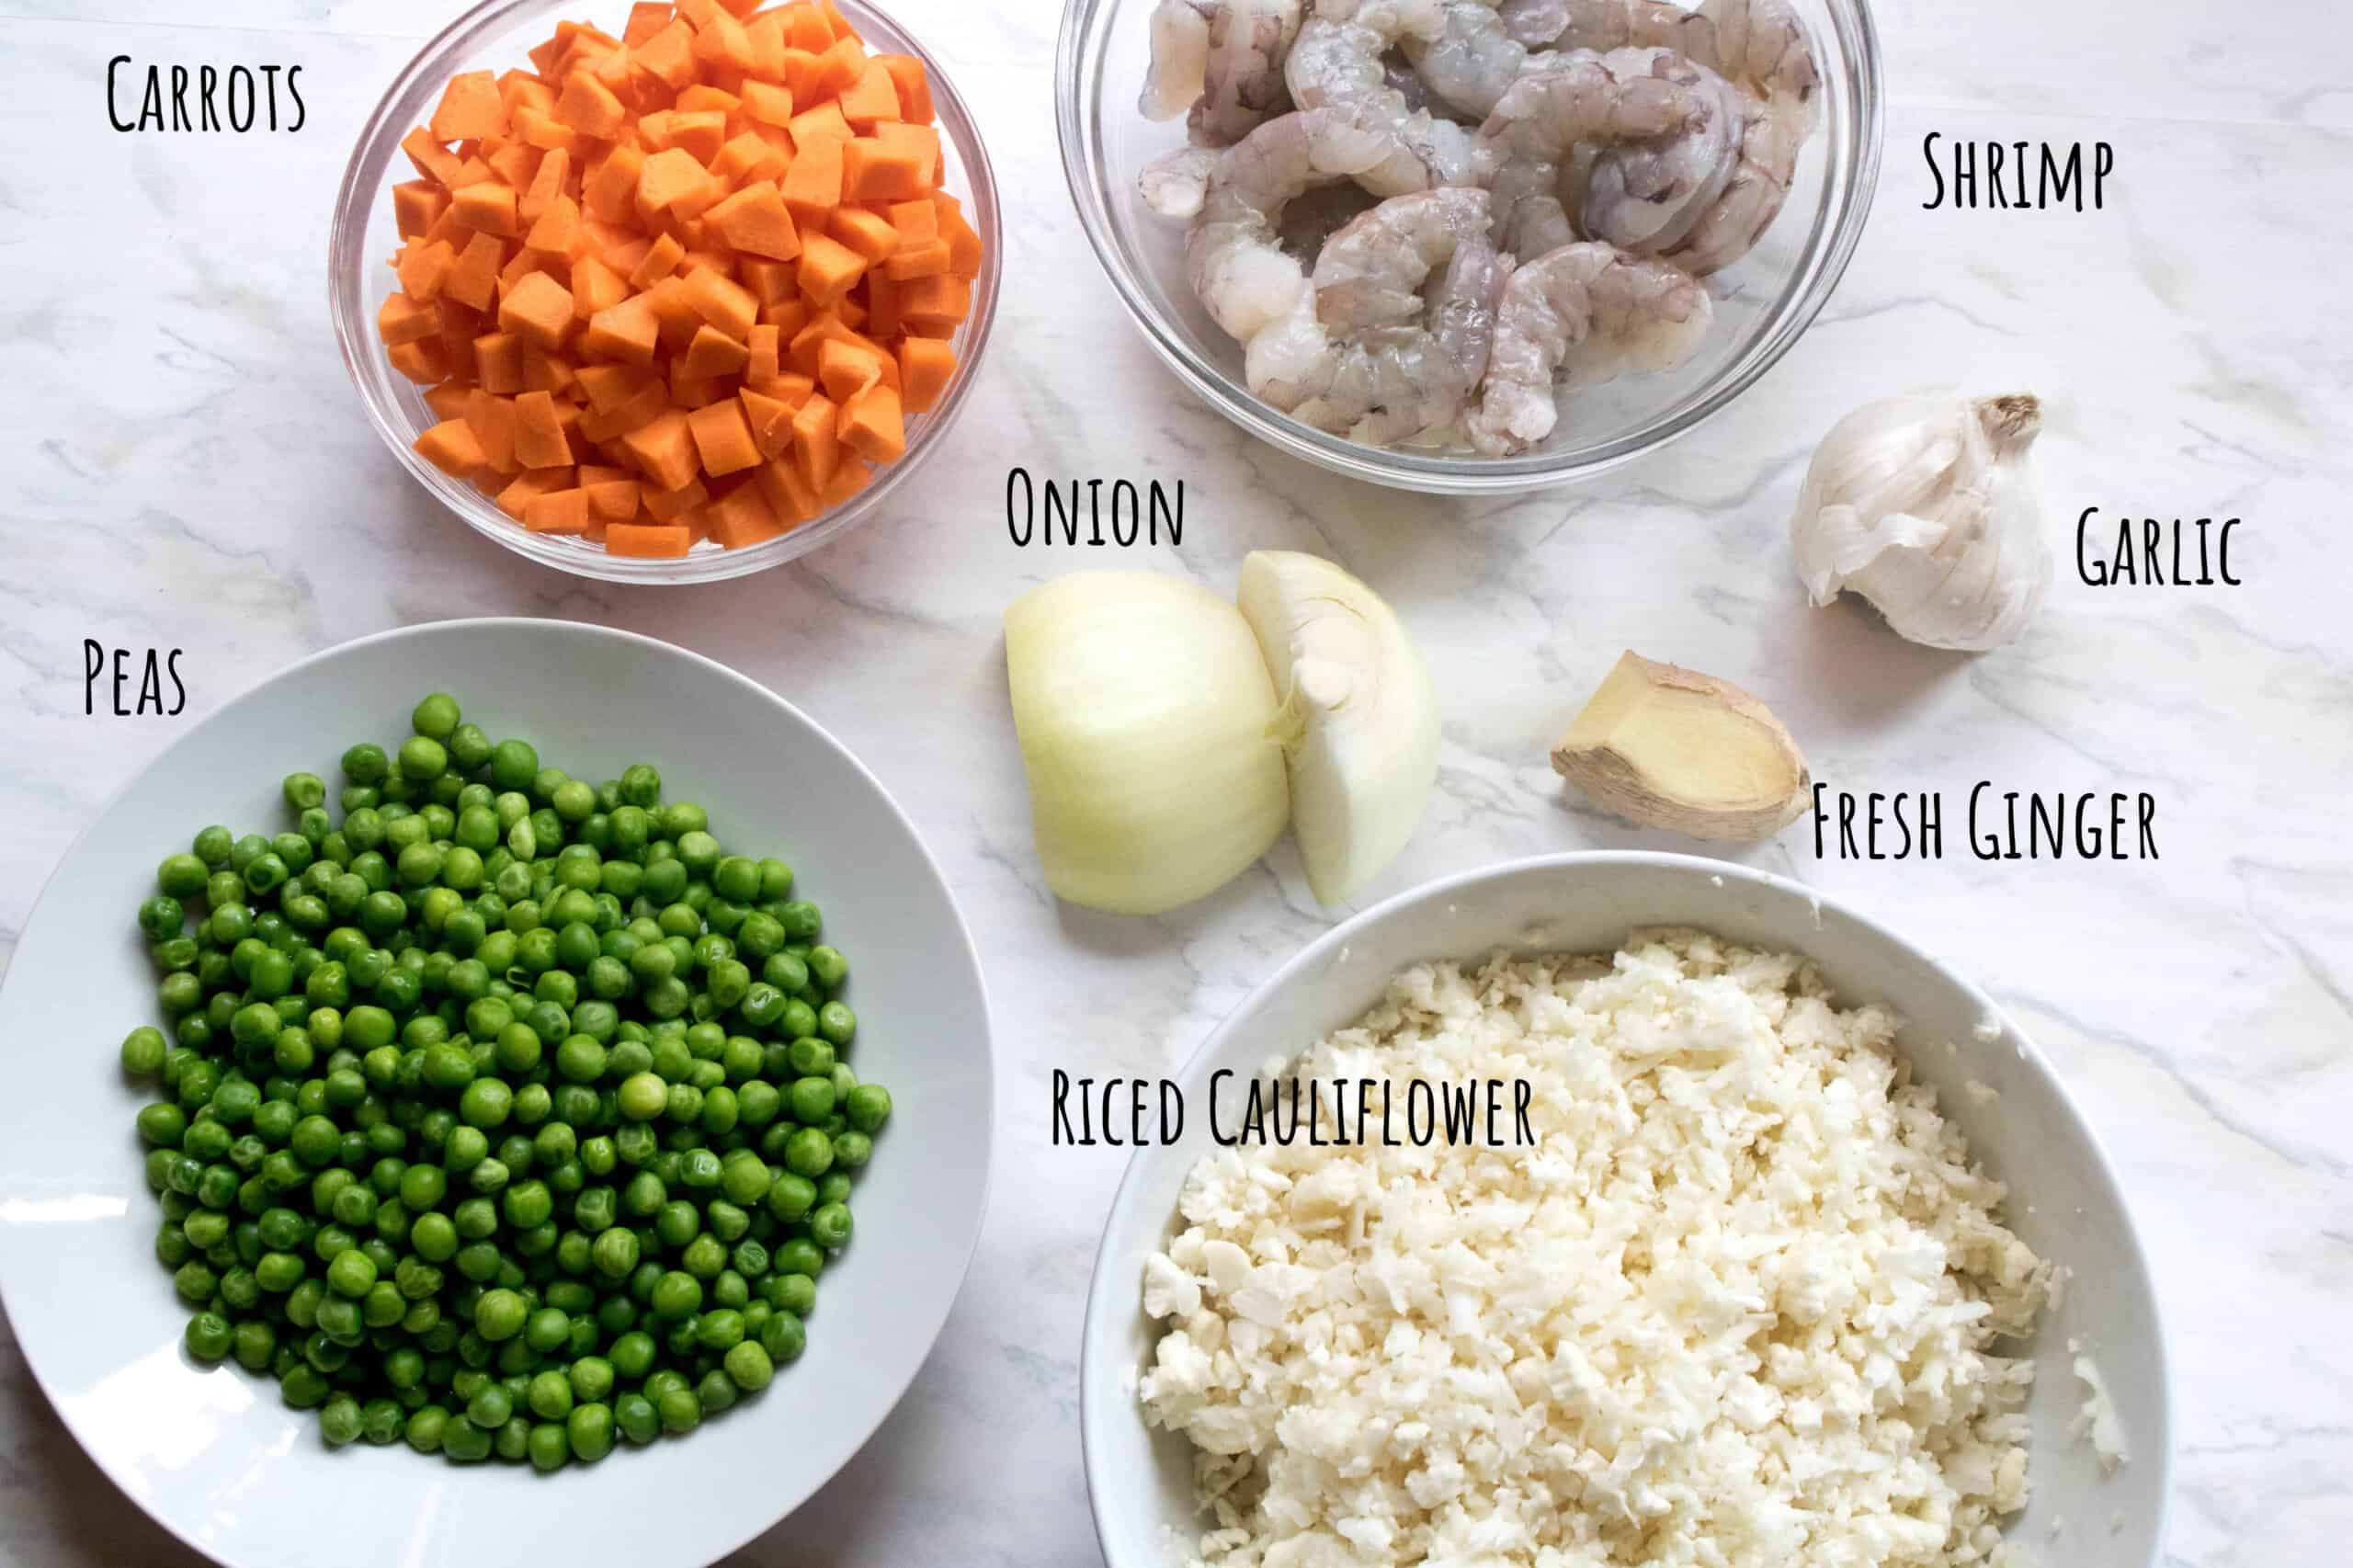 peas, carrots, onion, shrimp, garlic, and ginger and riced cauliflower on counter